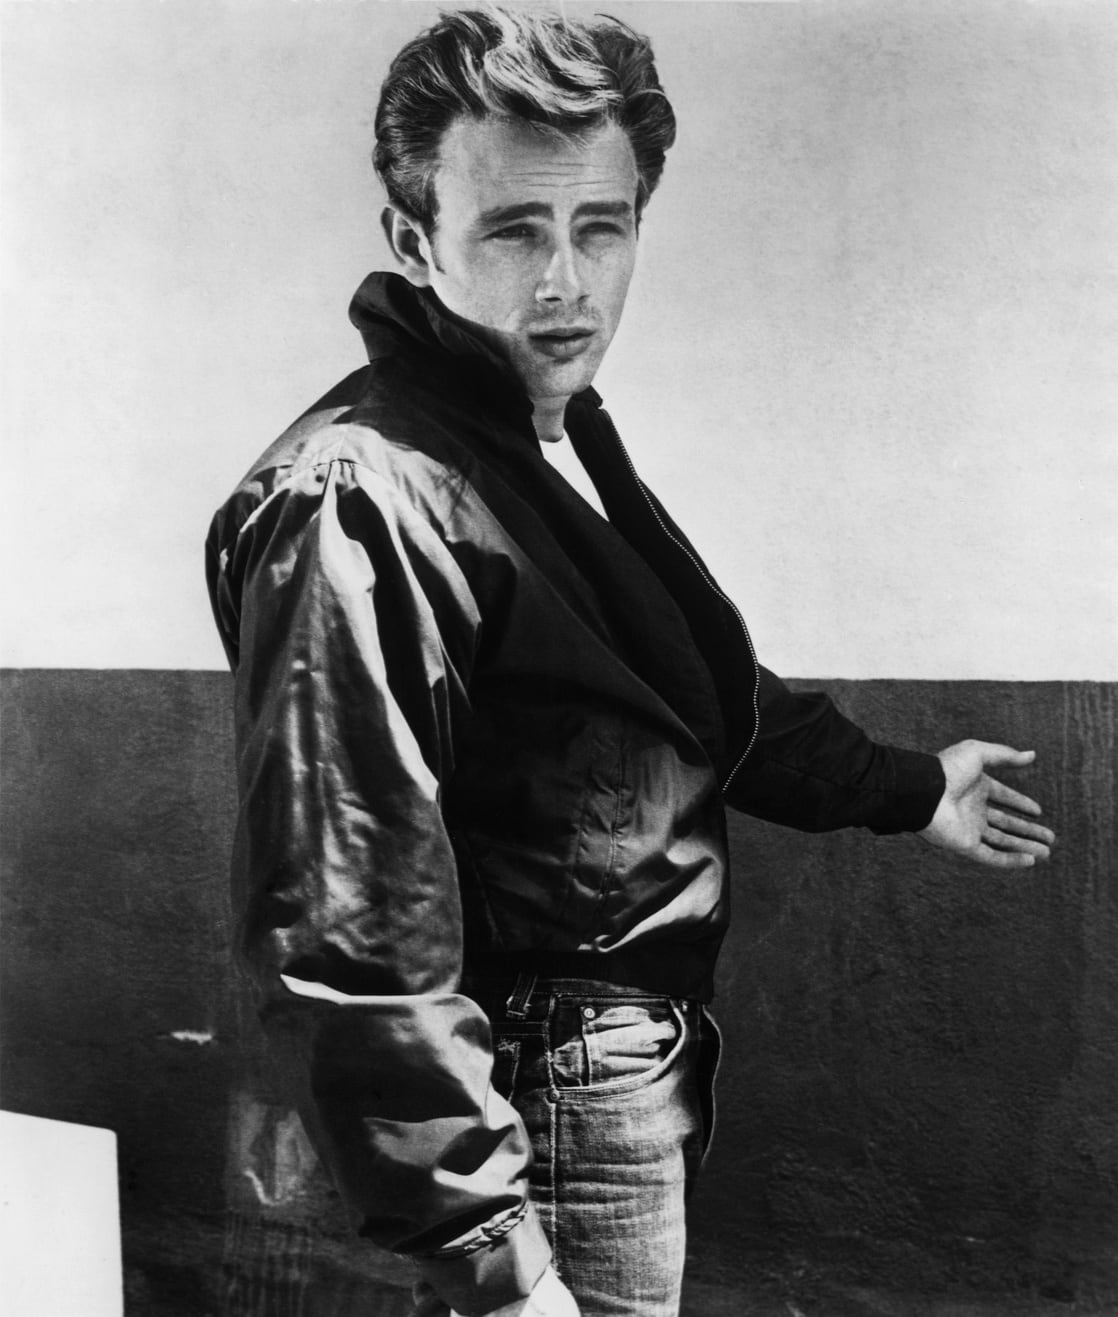 a biography of james dean a cultural icon of teenage disillusionment He is james byron dean, also known as james dean he was an american actor he is a cultural icon of teenage disillusionment, as expressed in the title of his most celebrated film, rebel without a cause (1955), in which he starred as troubled teenager jim stark.